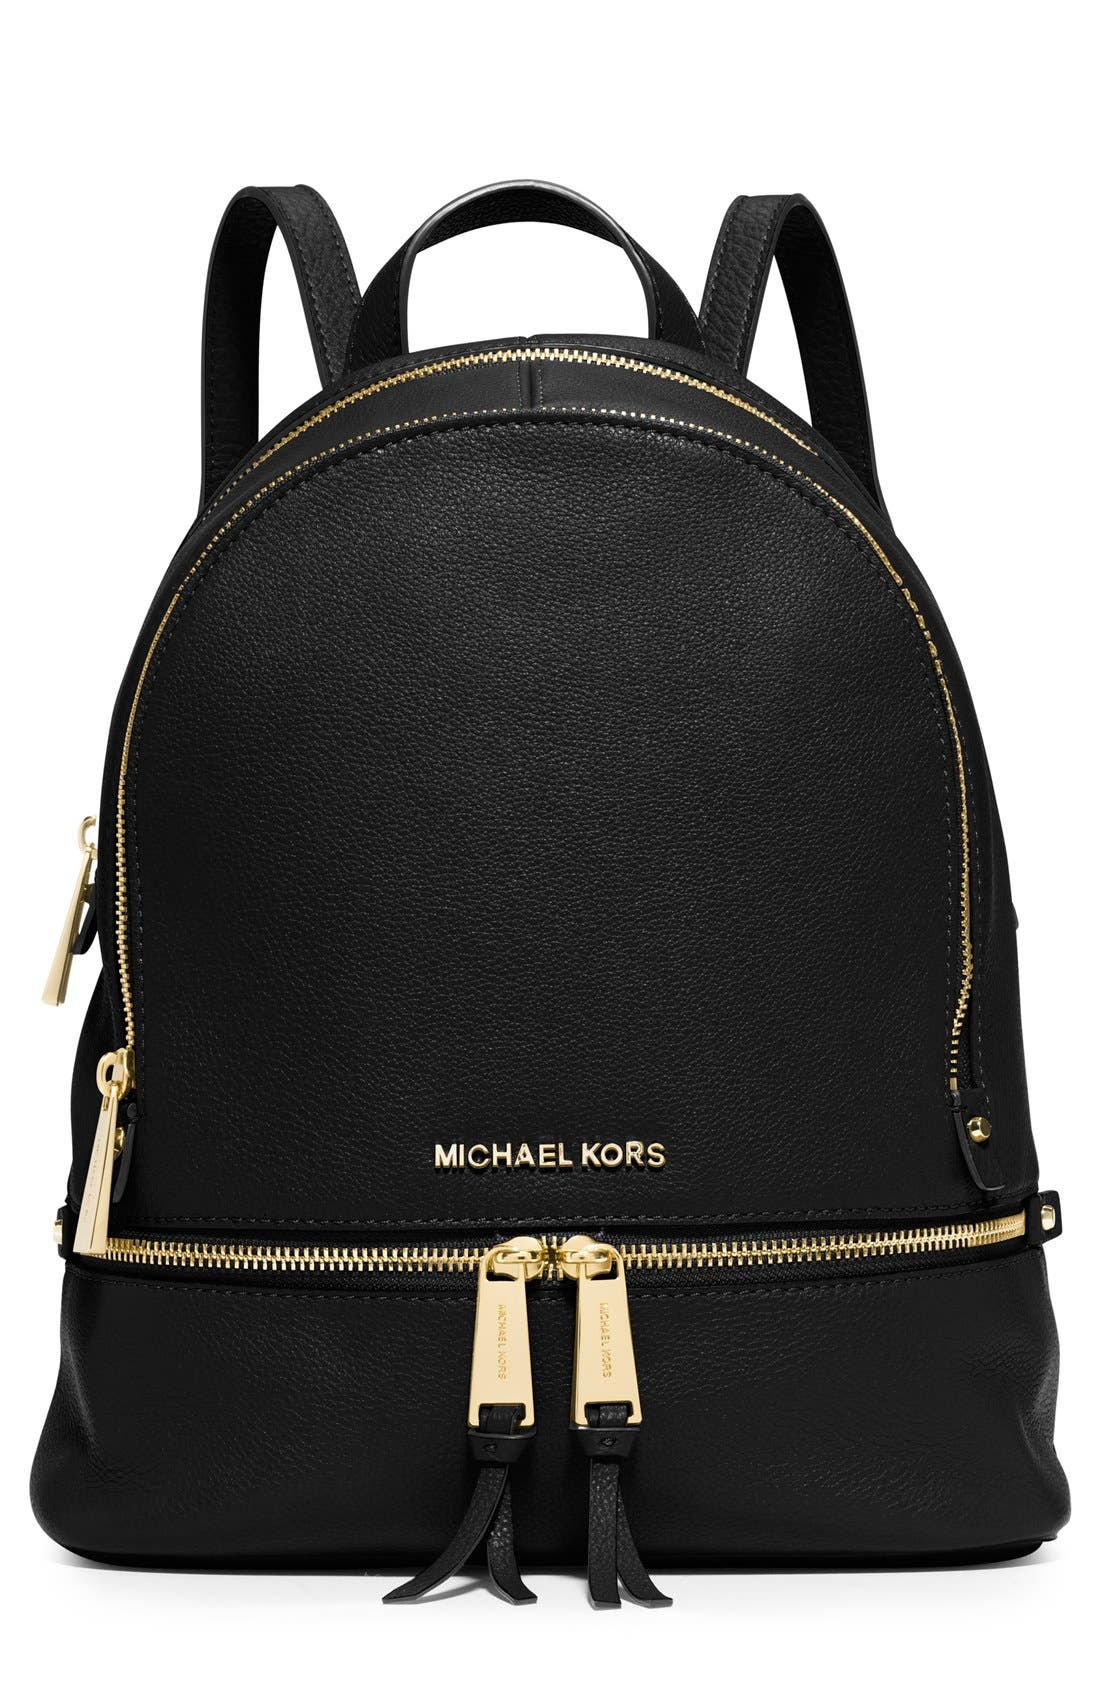 e26308eeaf7ae6 Buy michael kors fulton backpack yellow > OFF32% Discounted